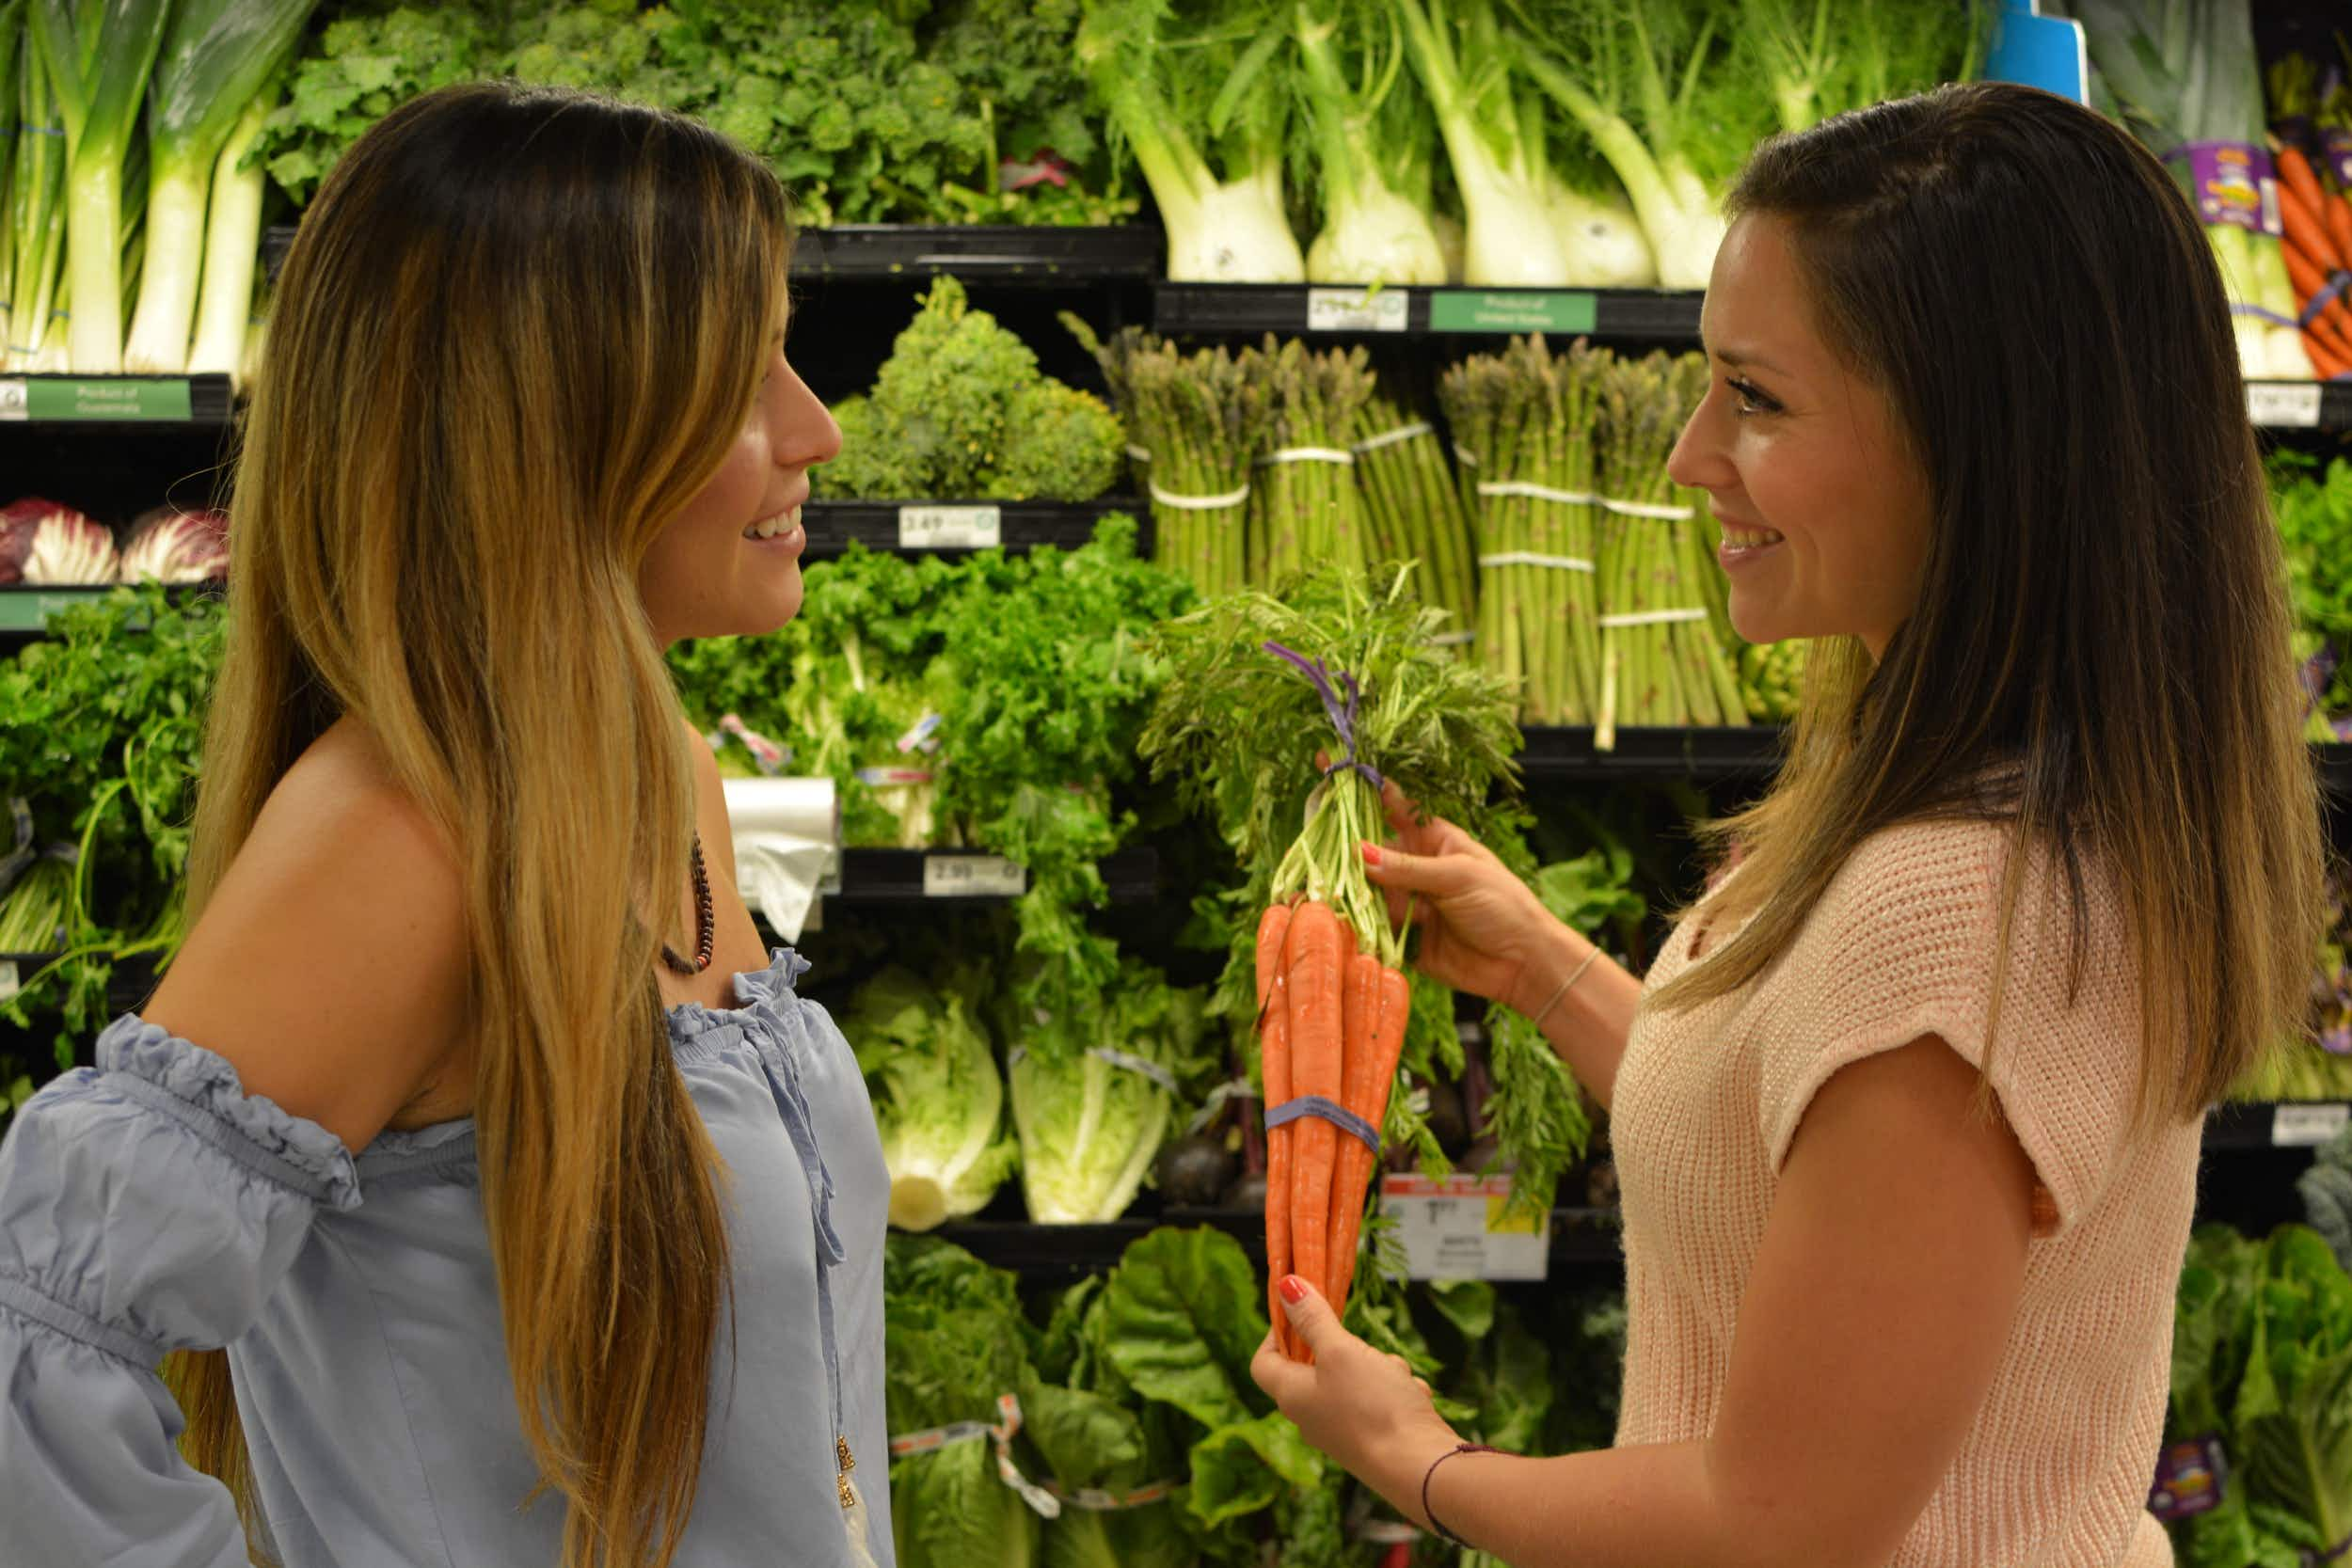 Would you use a 'grocery guru' on vacation to help make healthier choices?